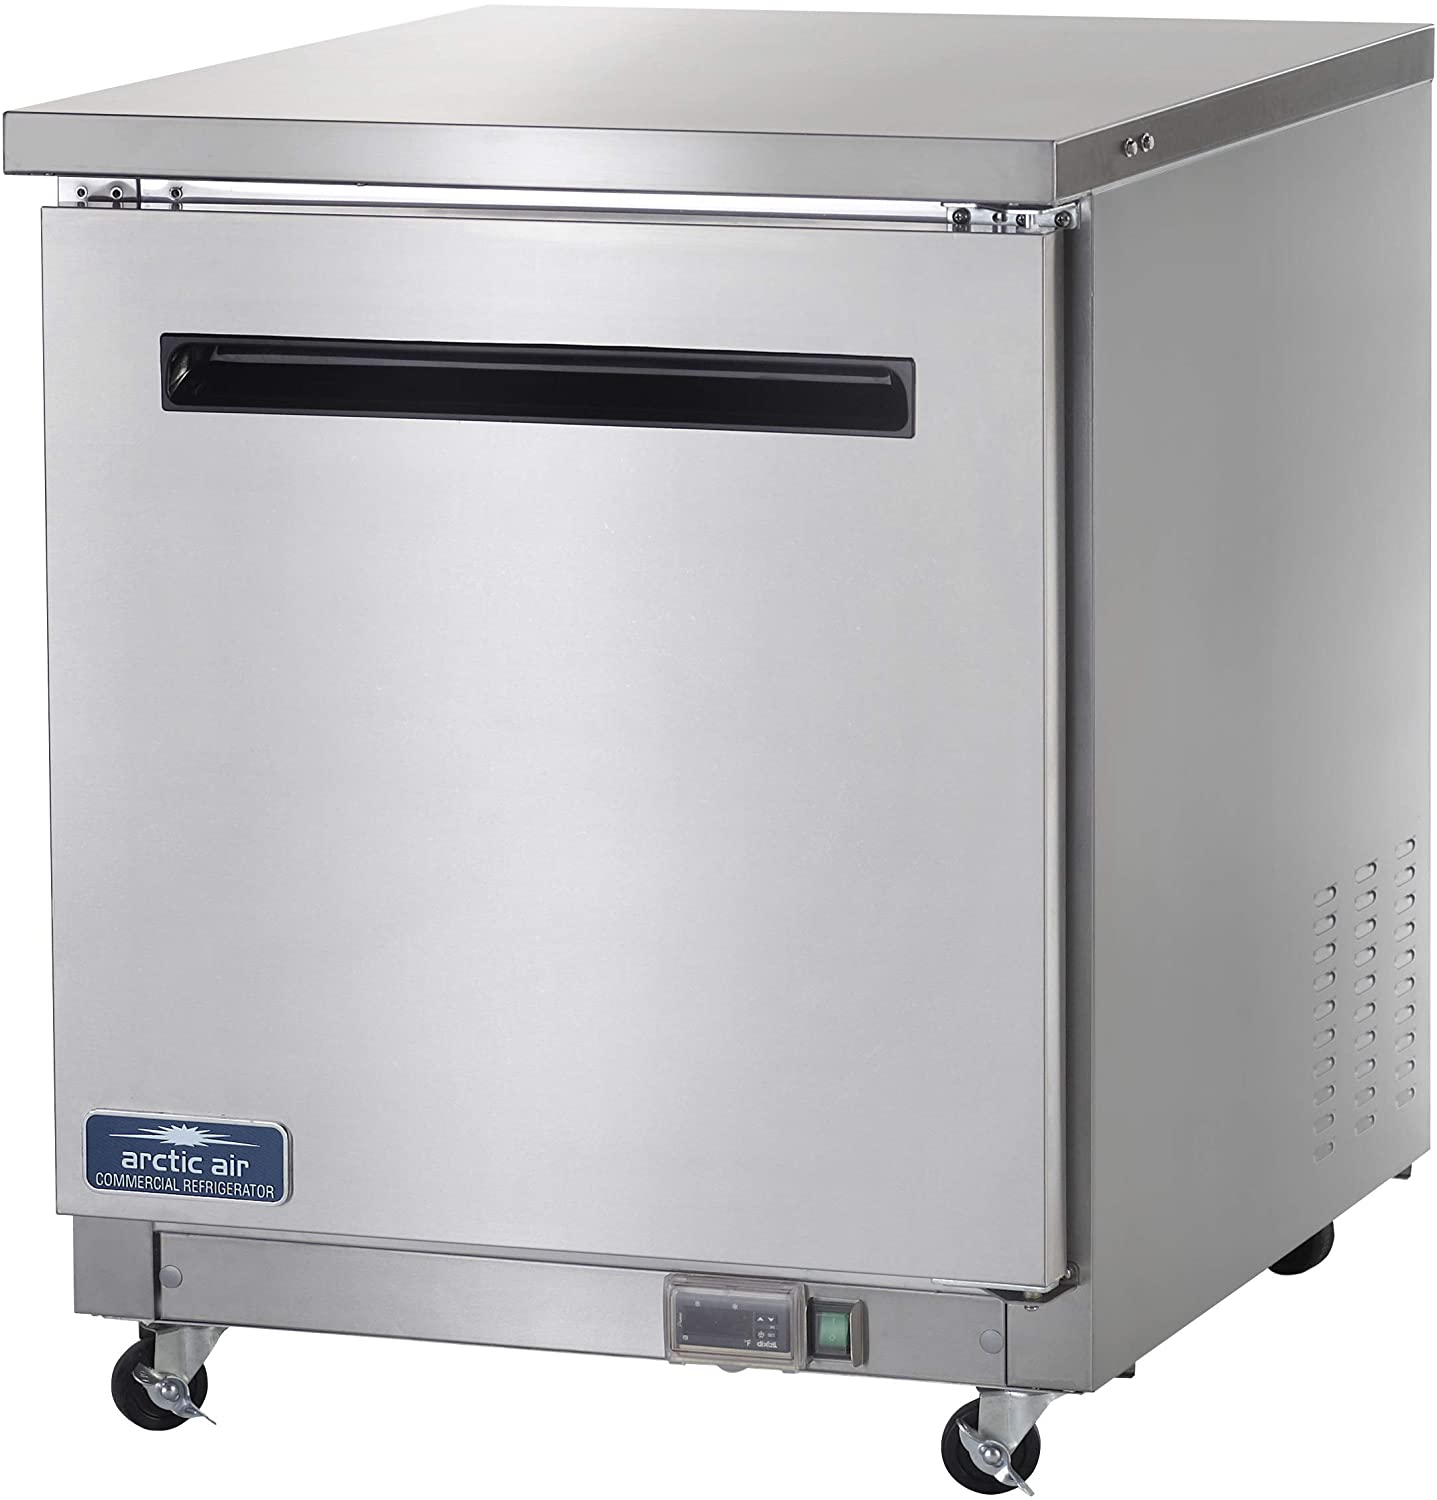 "Arctic Air AUC27F 27"" Undercounter Freezer - 6.5 cu. ft, Stainless Steel"